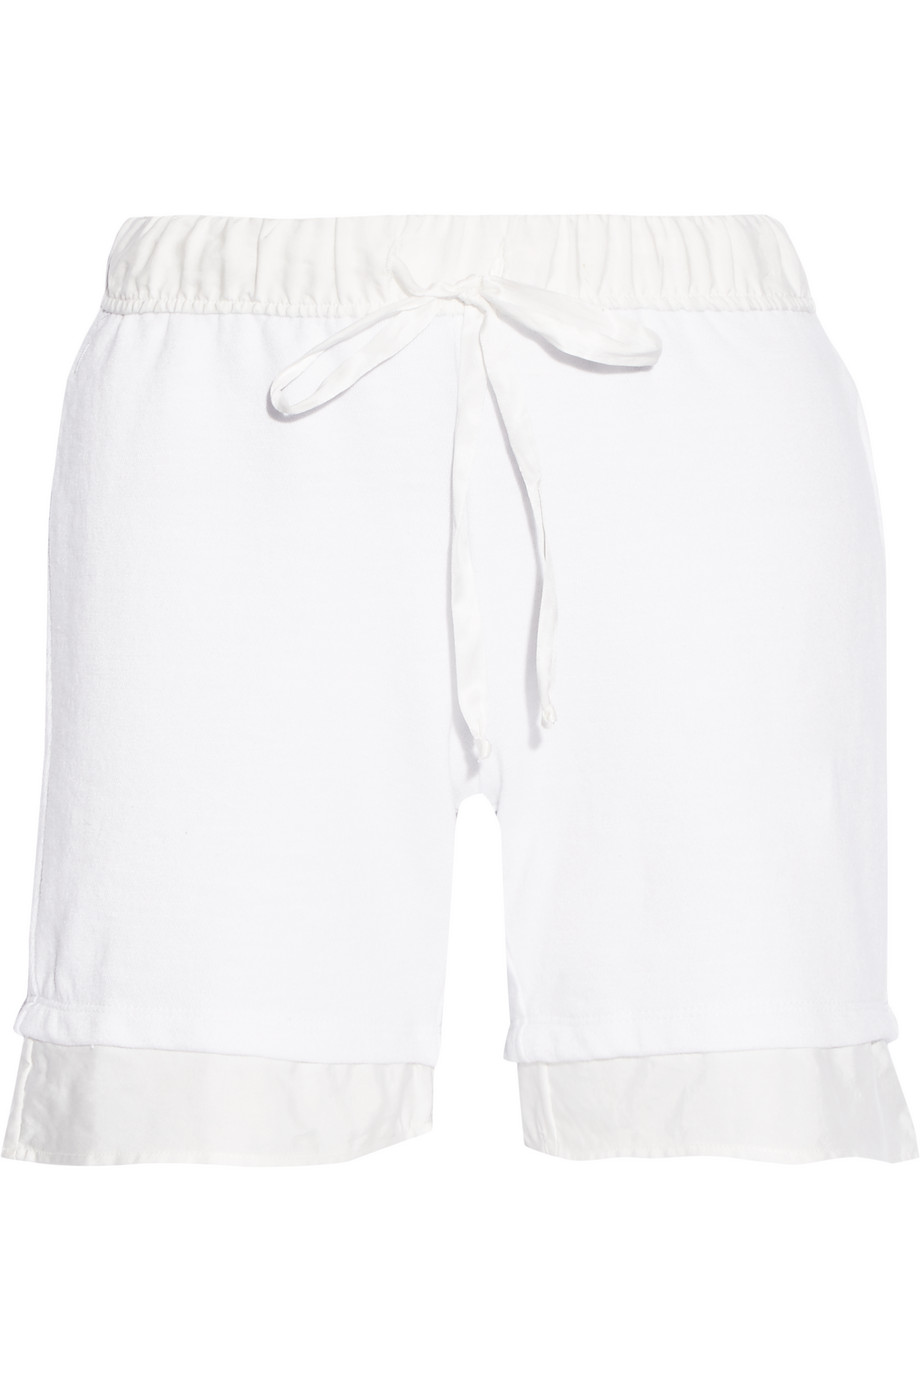 CLU Twill-Trimmed Cotton-Blend Shorts, White, Women's